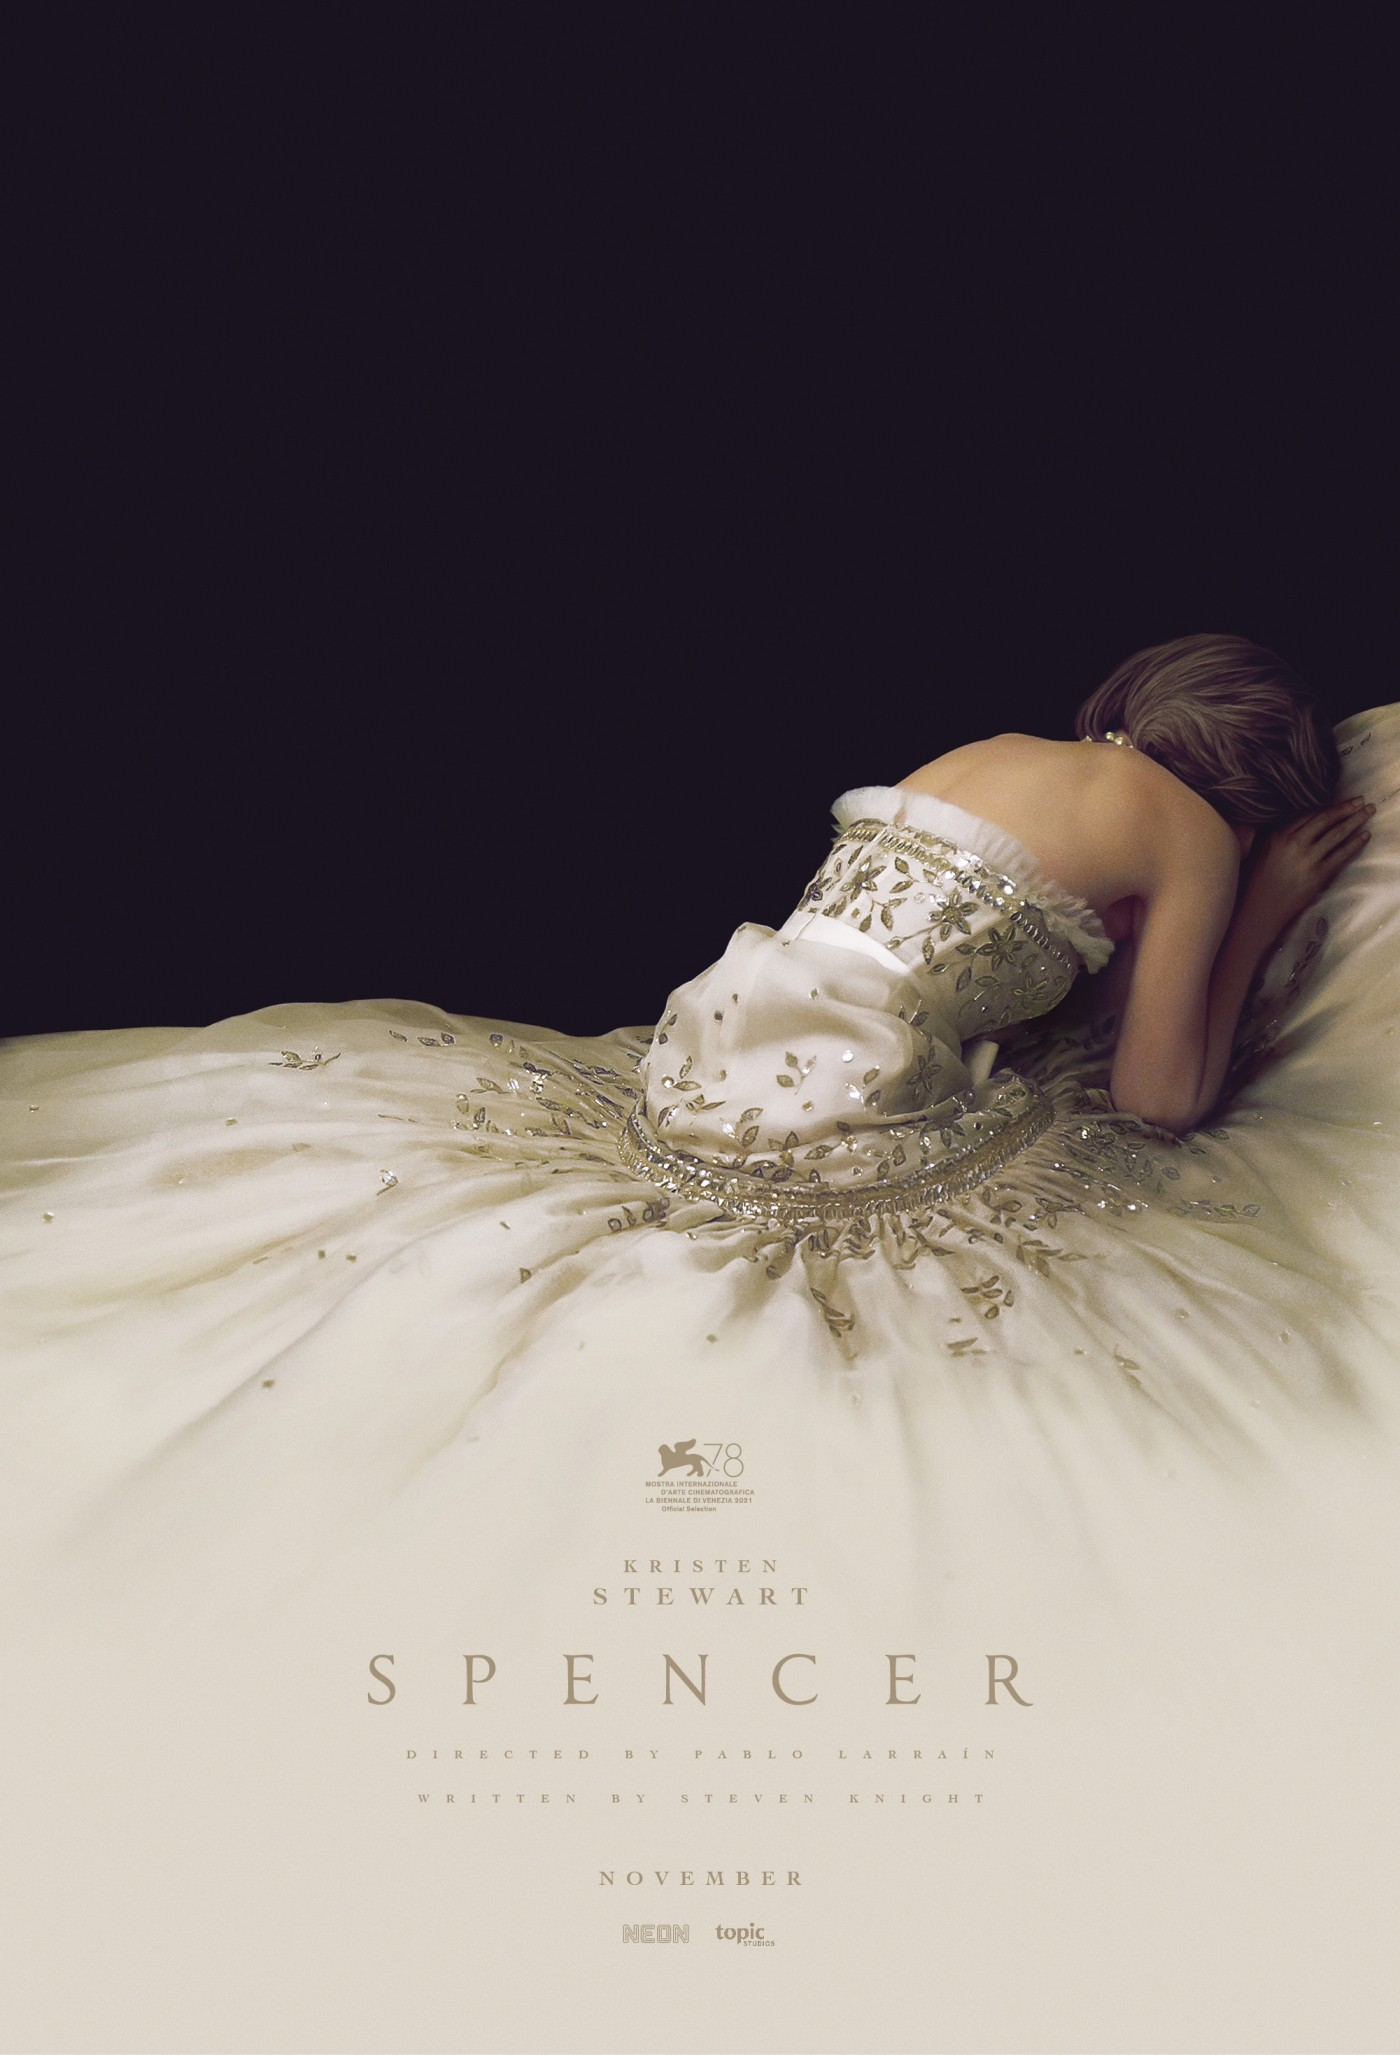 spencer-lady-diana-poster-banner